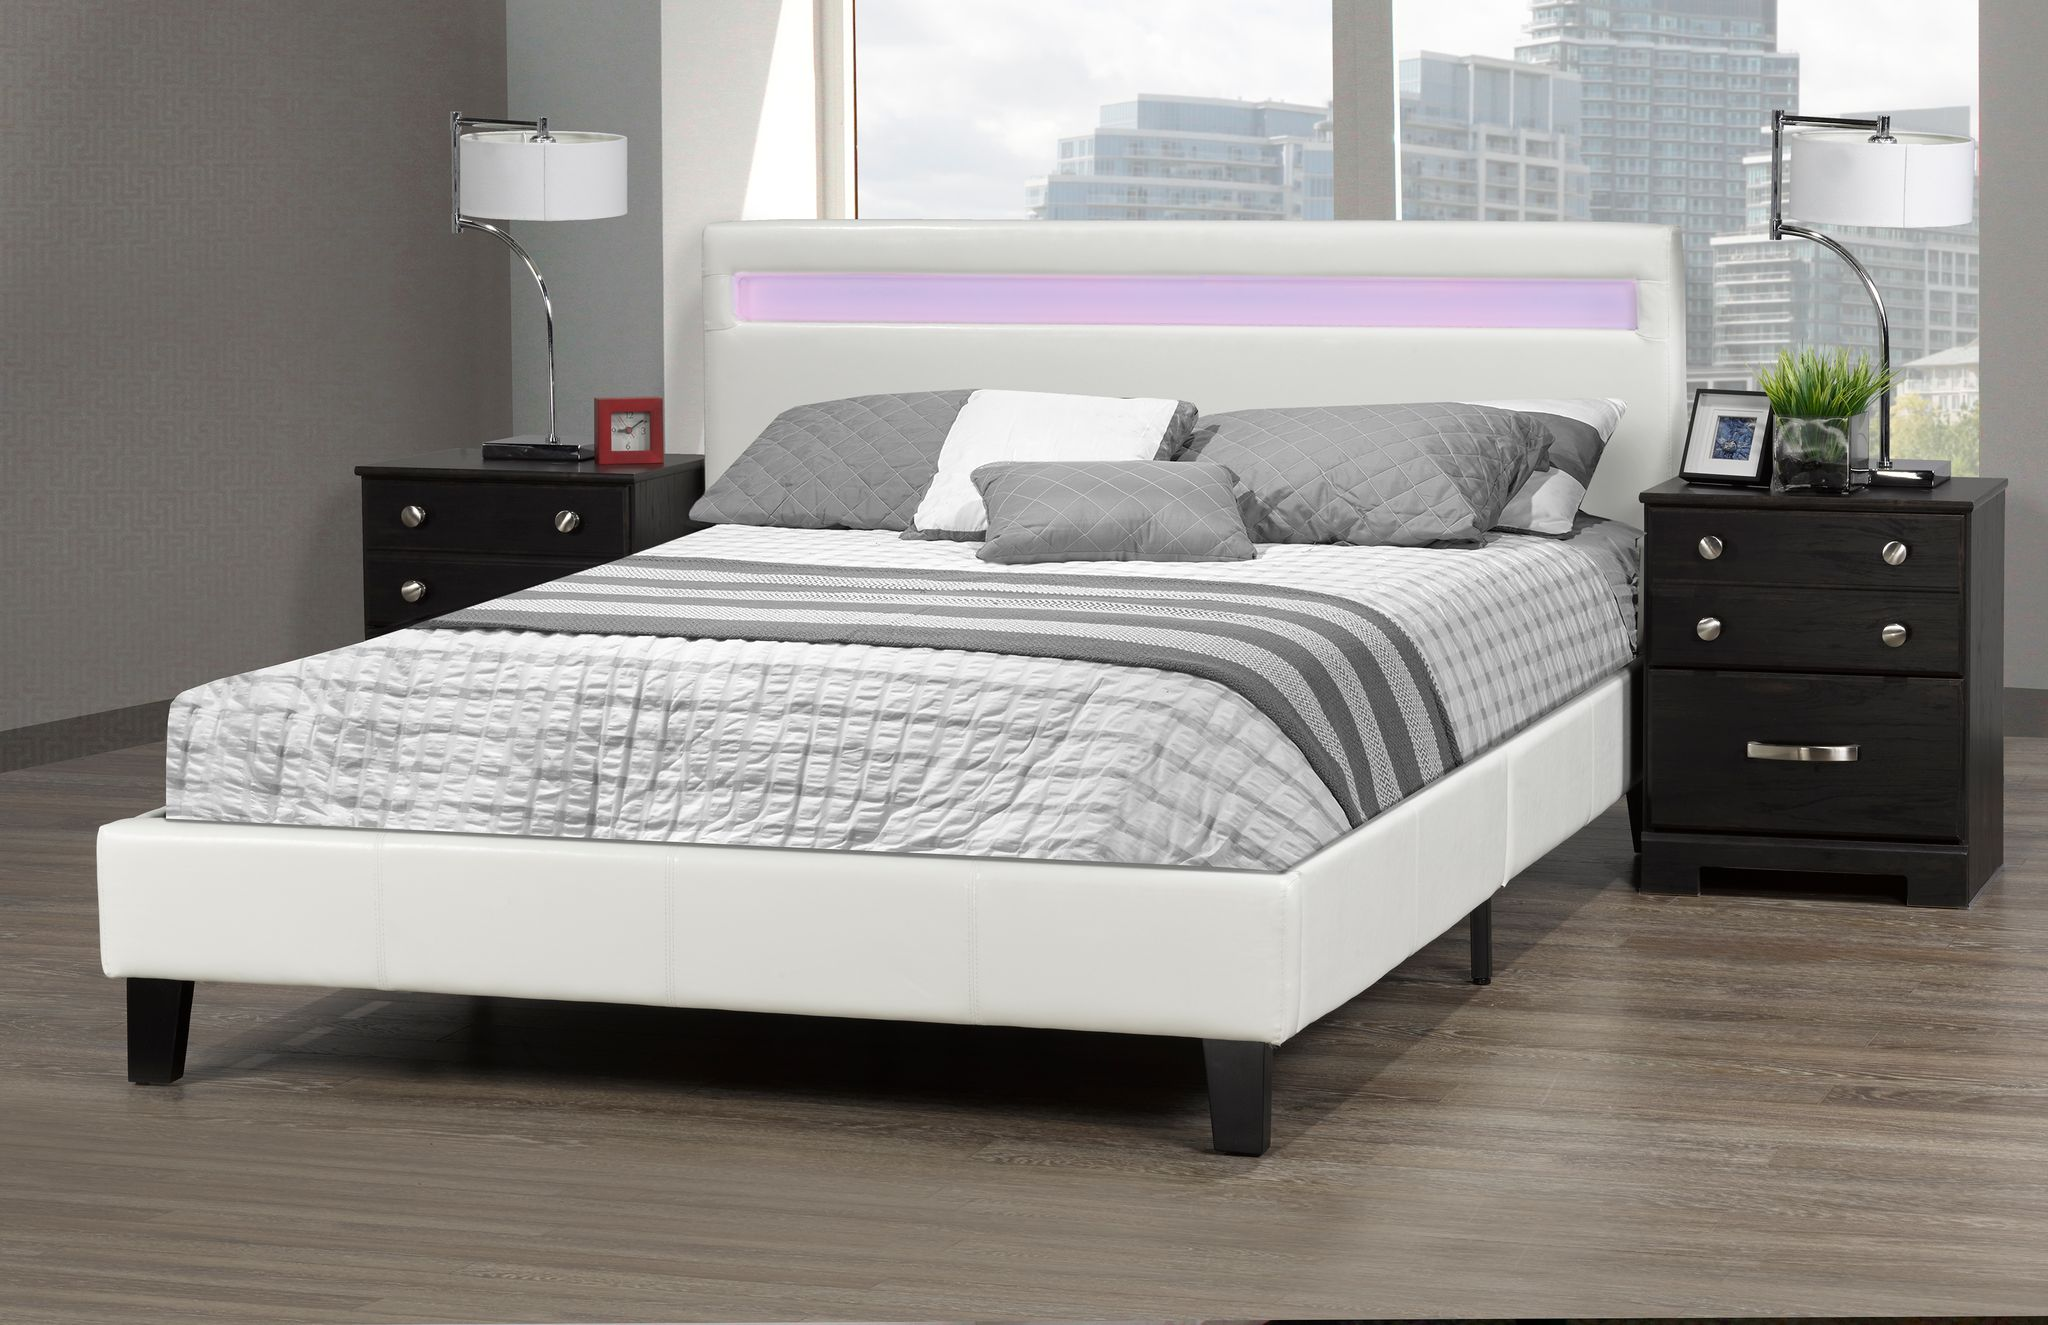 DHARA DOUBLE BED IN A BOX WHITE W/LIGHT